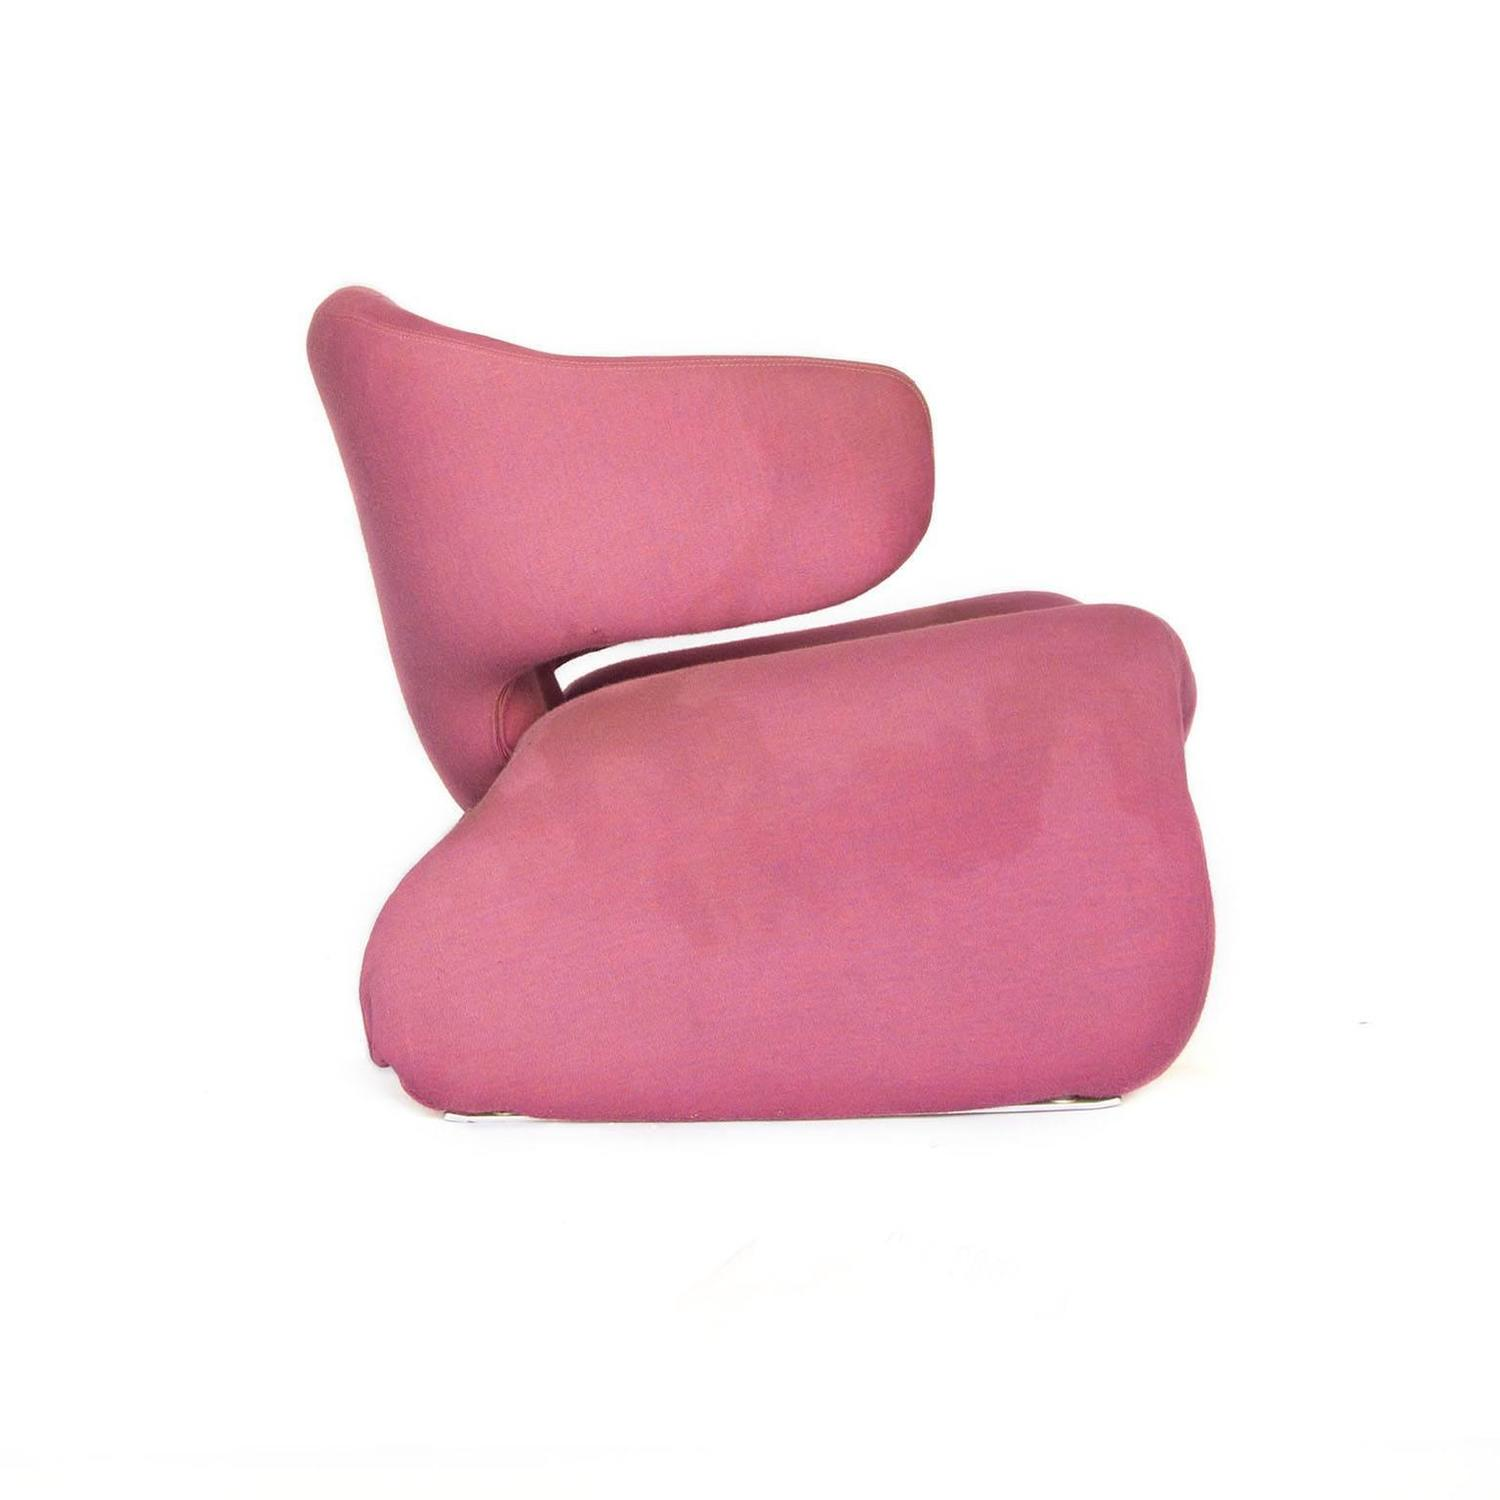 1960 Olivier Morgue Djinn Lounge Chair in Pink Original Fabric for Airborn